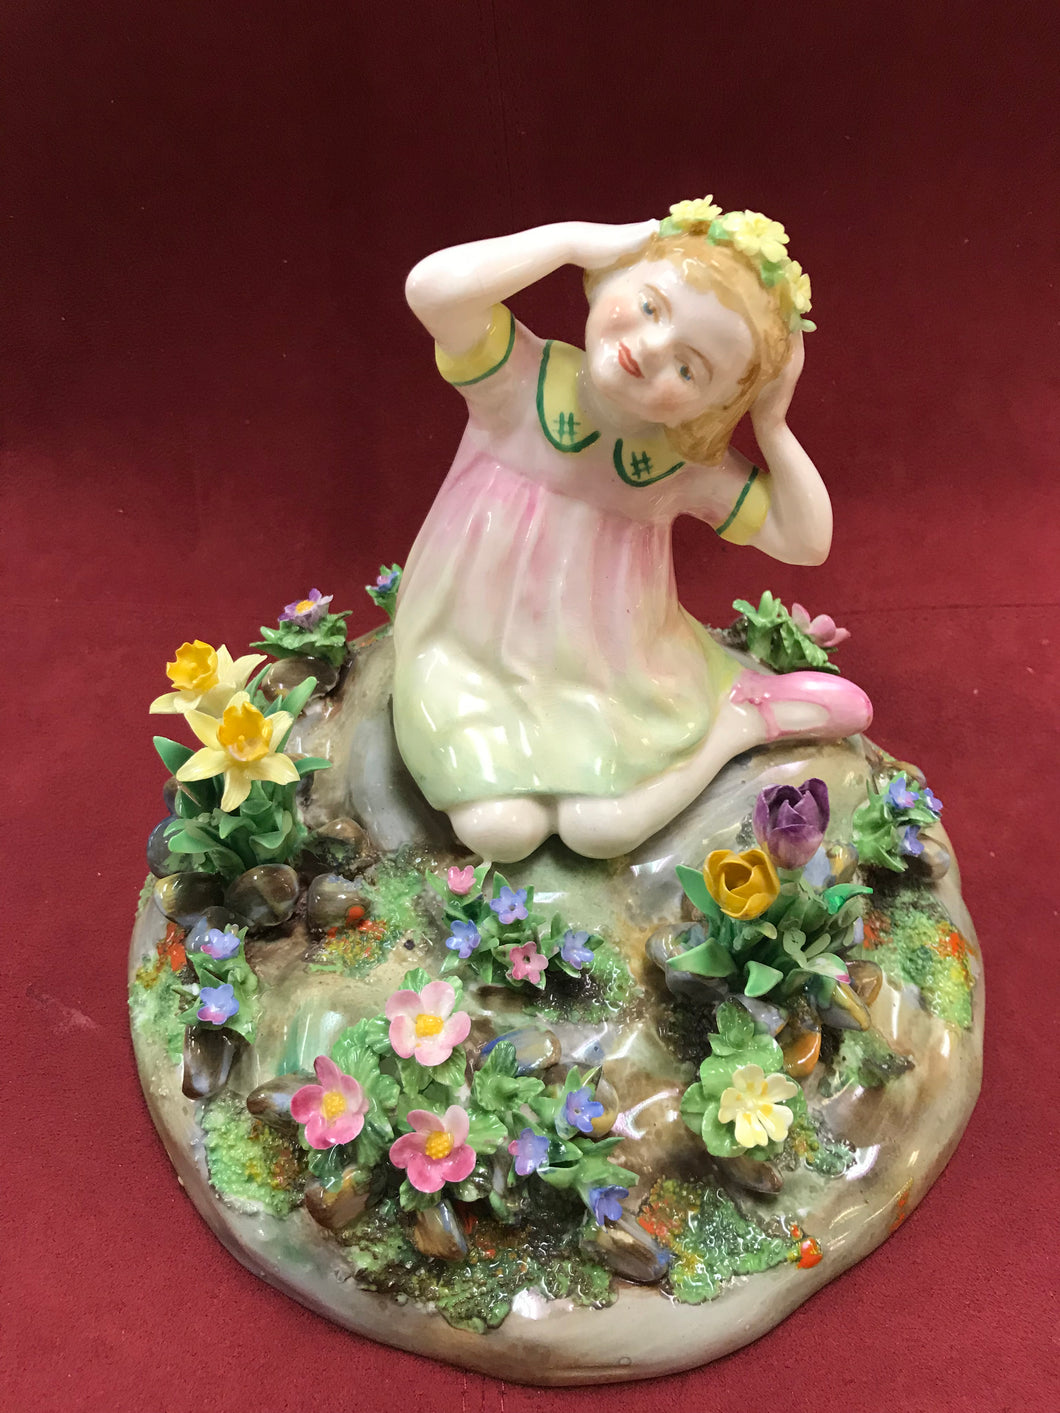 Crown Porcelain, England, Figurine.  Girl Seated with Spring Time Flowers